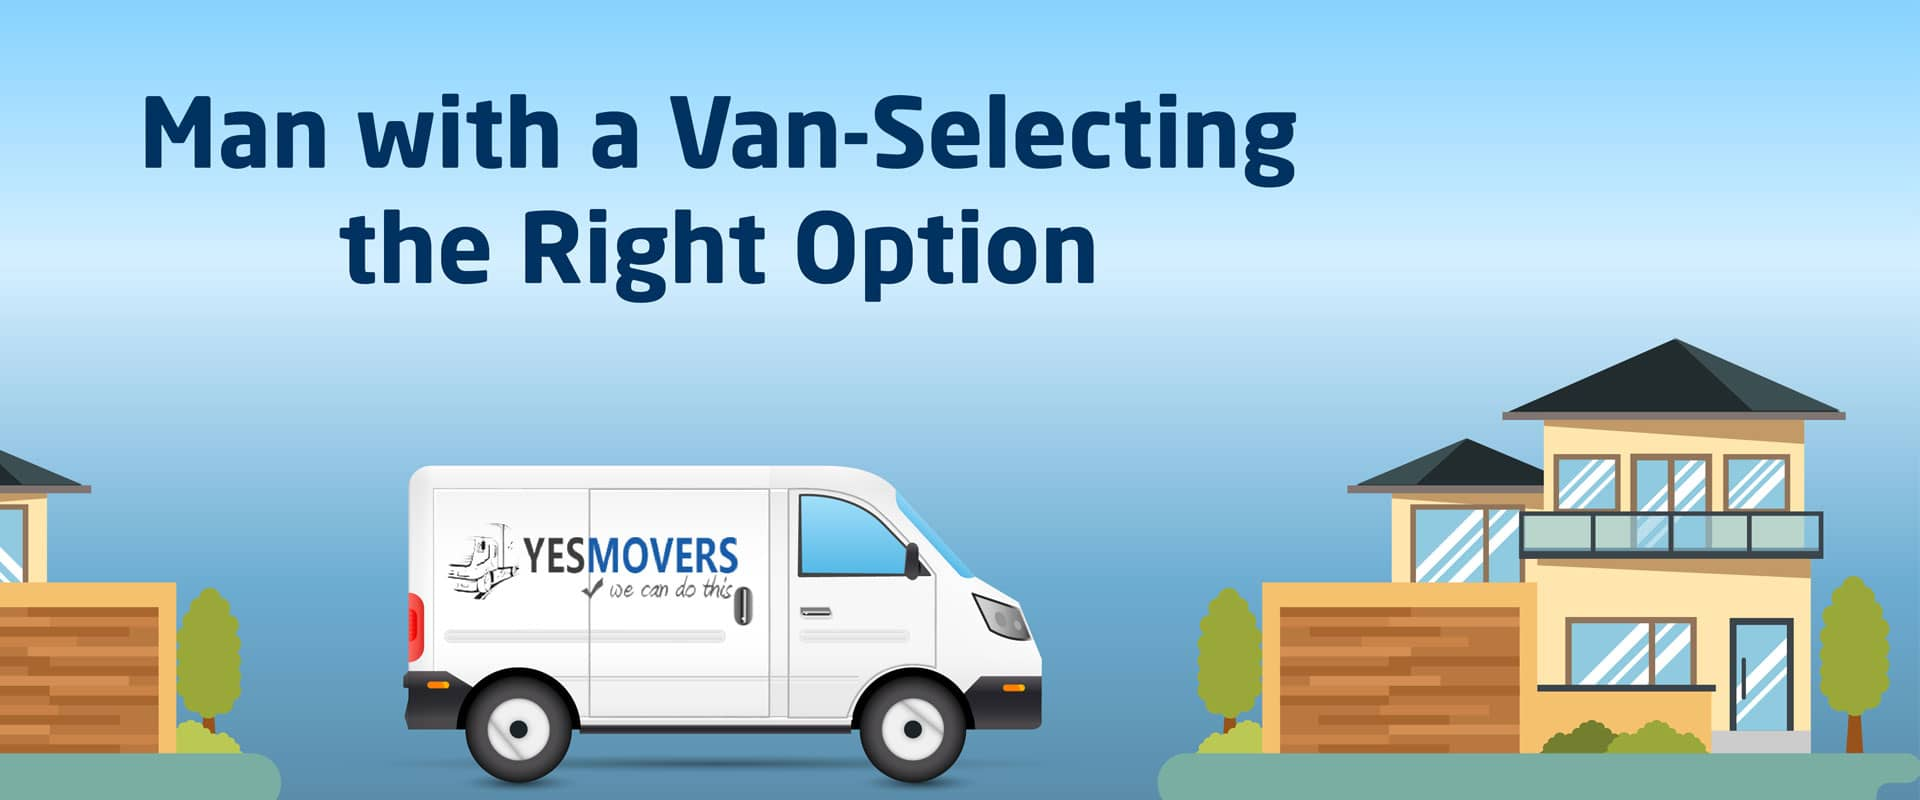 Man-with-a-Van-Selecting-the-Right-Option-high-slide